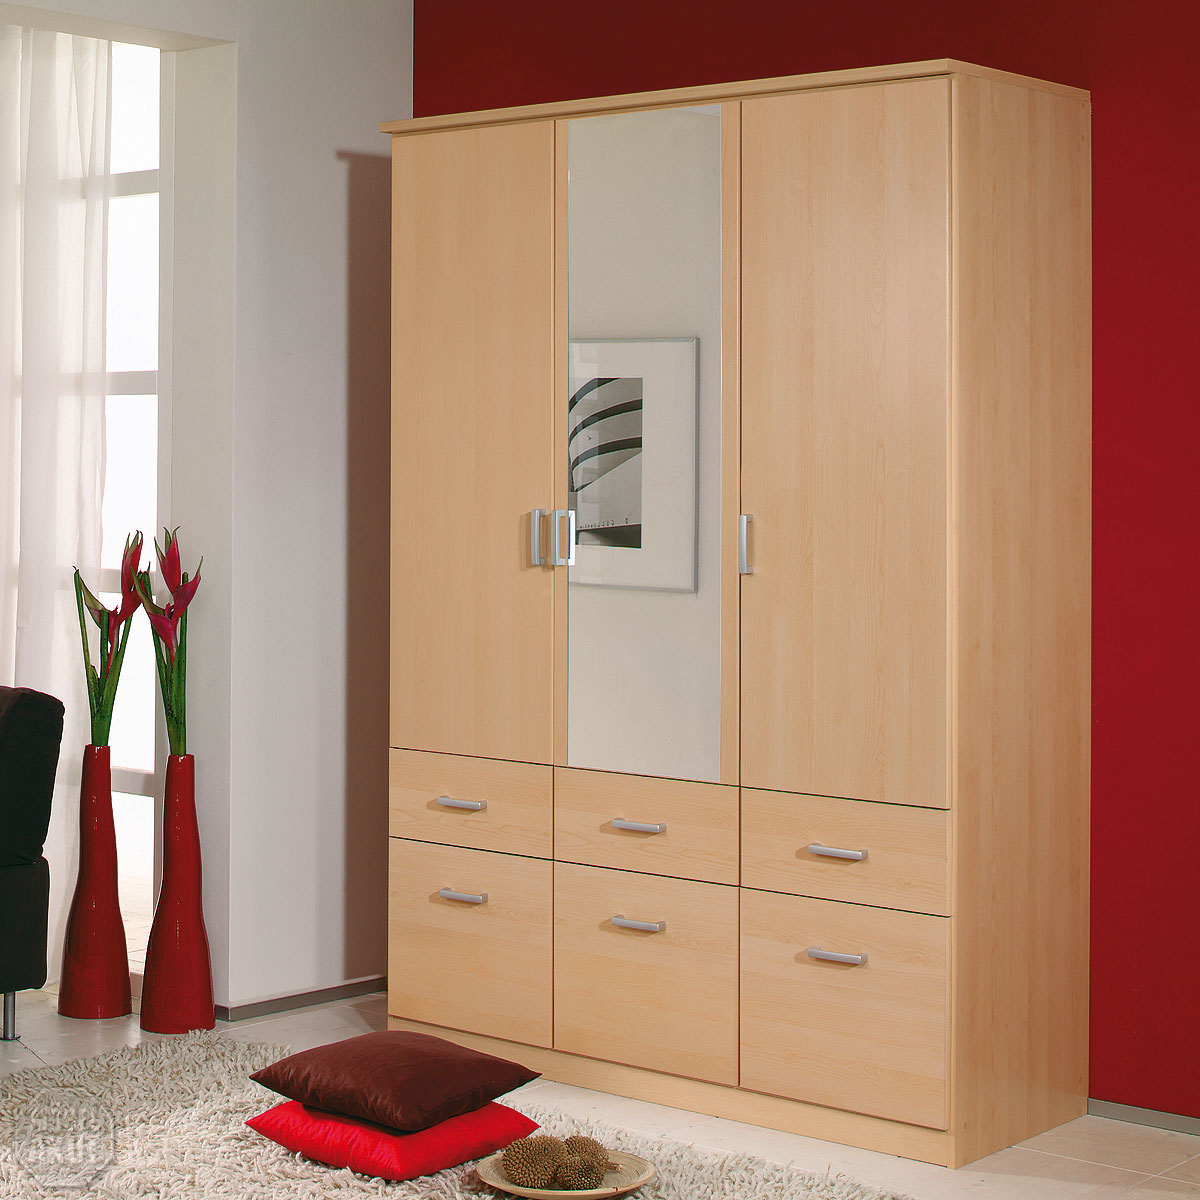 kleiderschrank bremen schrank w scheschrank in berg ahorn mit spiegel 136 cm ebay. Black Bedroom Furniture Sets. Home Design Ideas